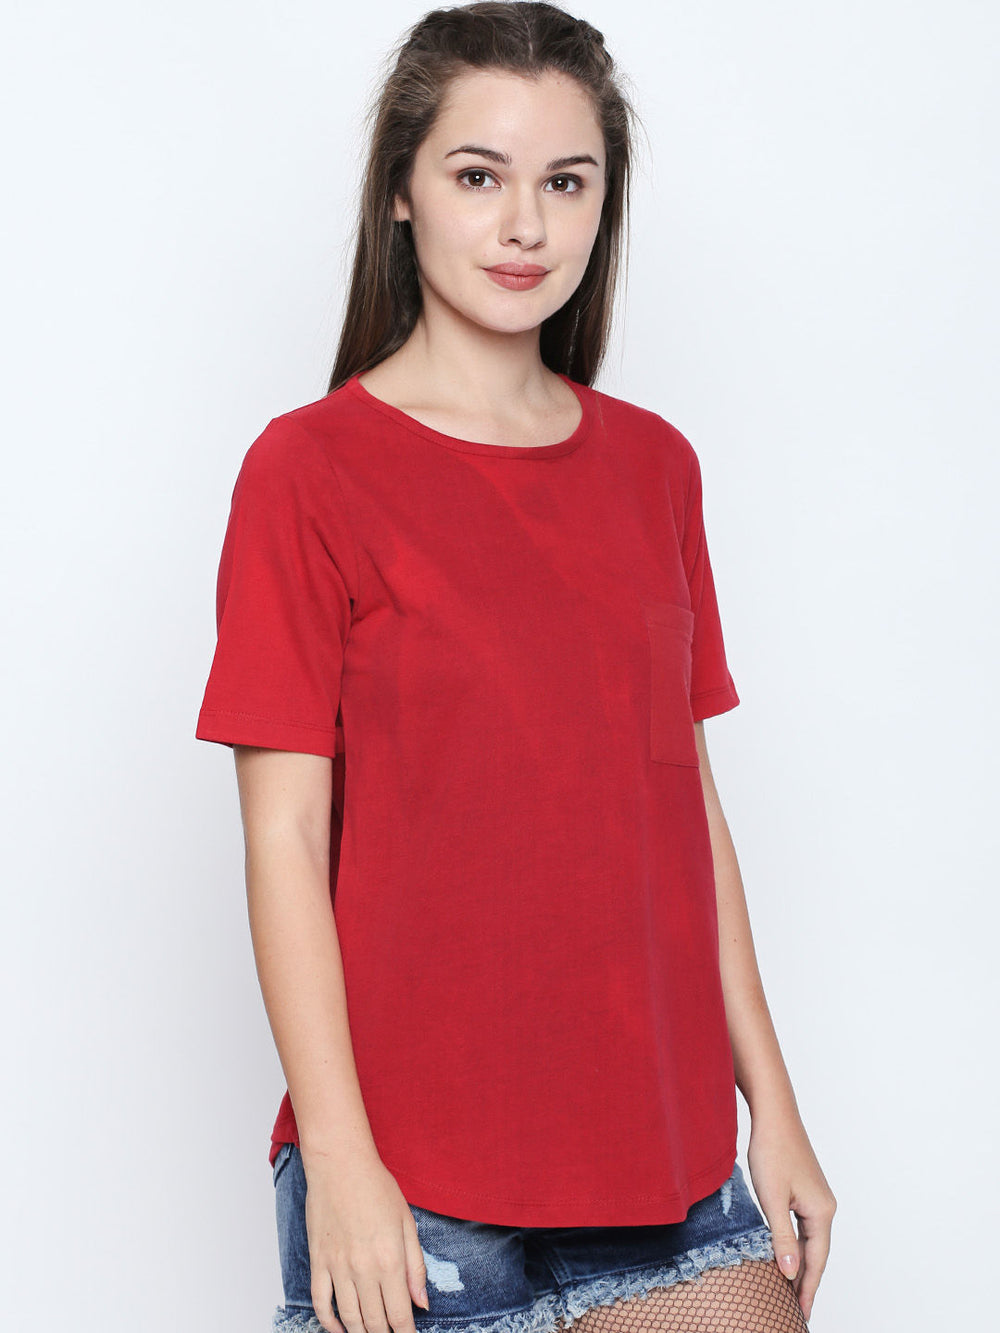 Disrupt Red Cotton Half Sleeve T-Shirt For Women's